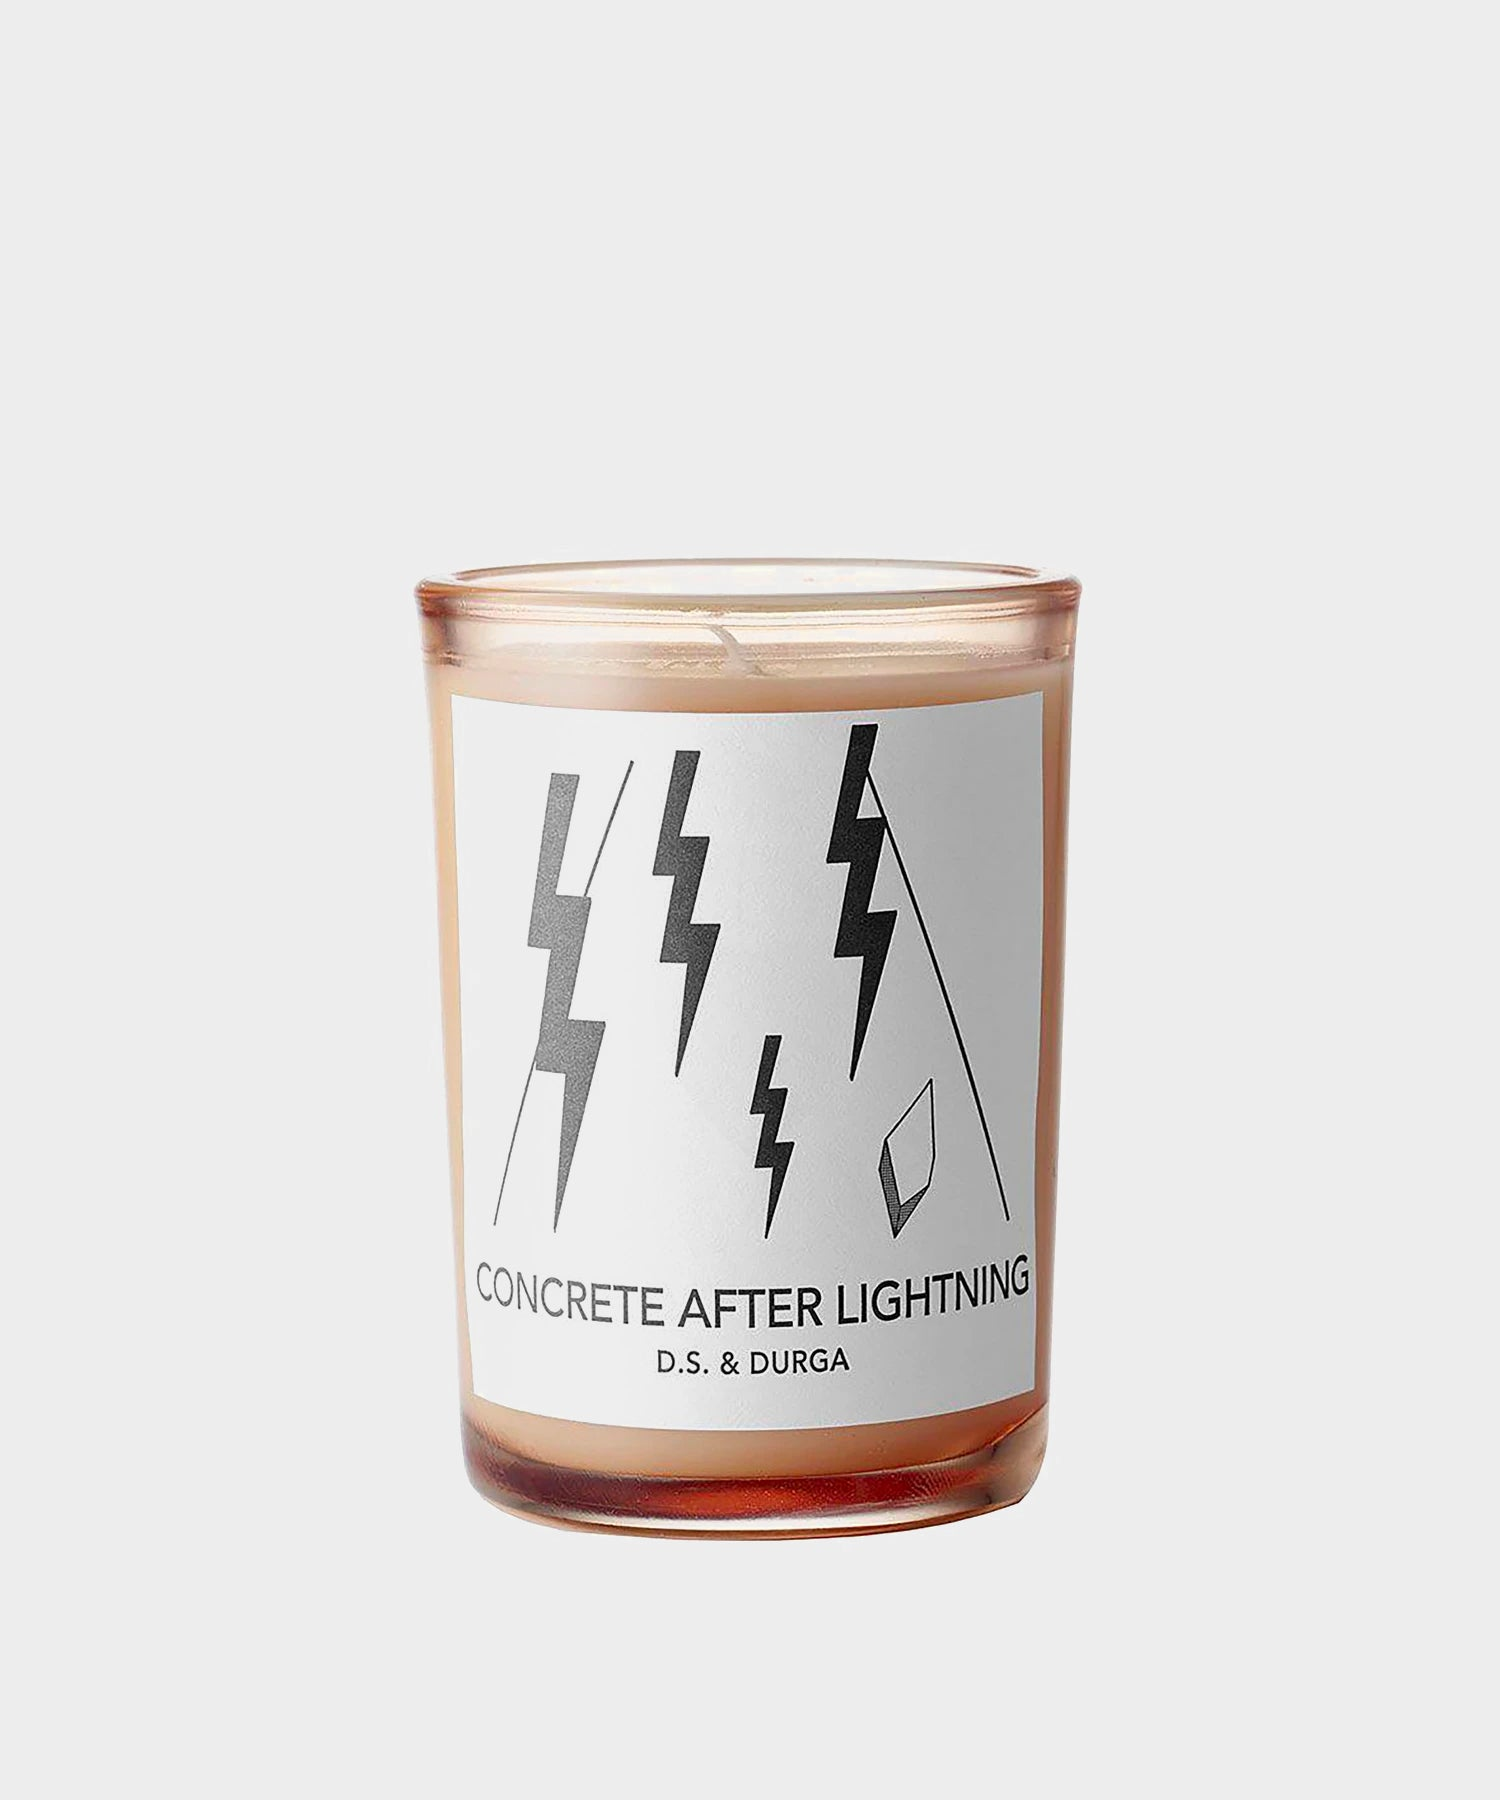 D.S. & Durga Concrete After Lightning 7 oz candle